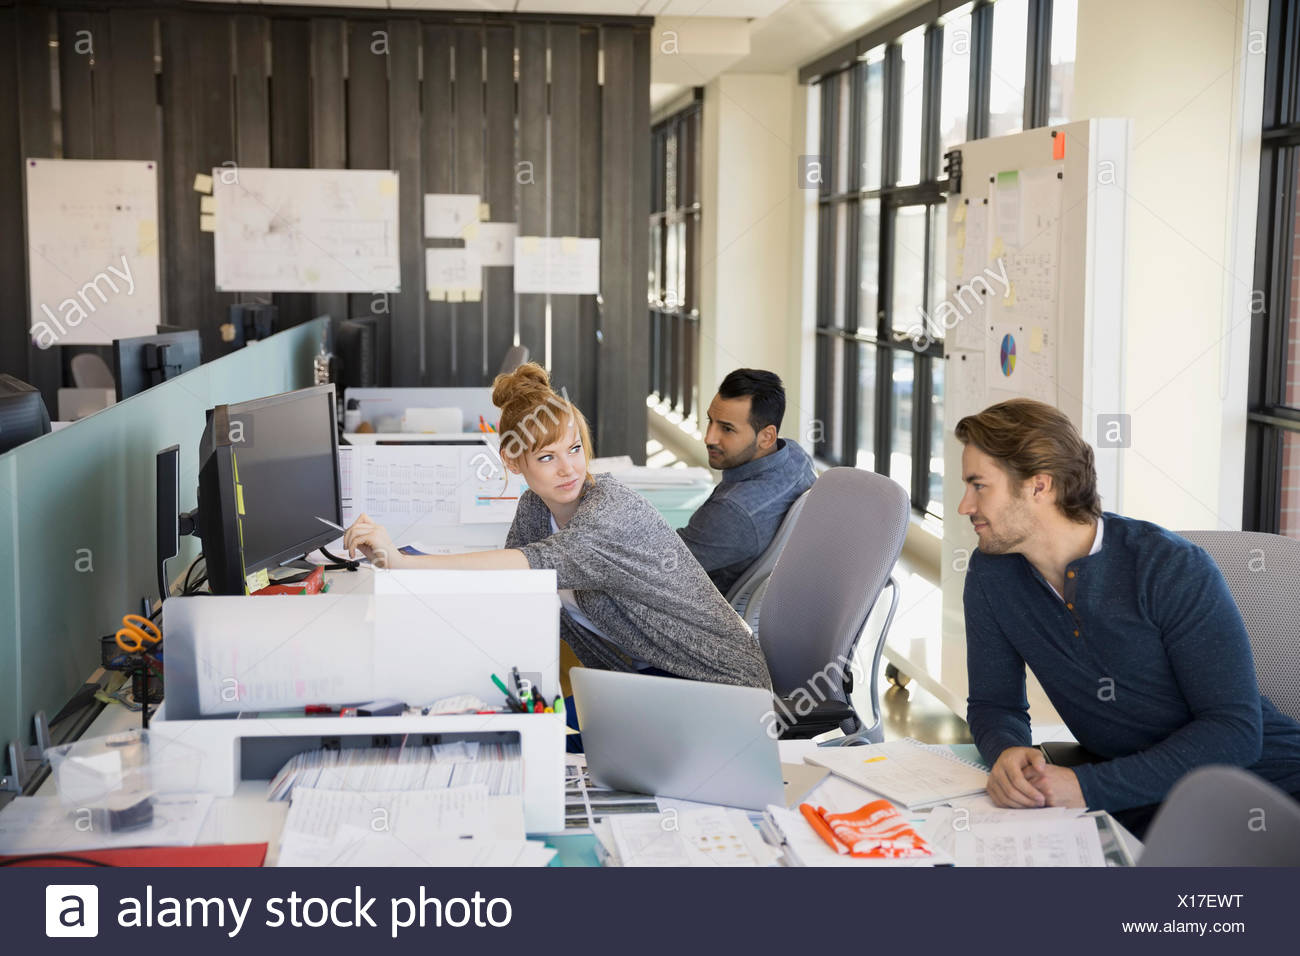 Business people working in office Photo Stock